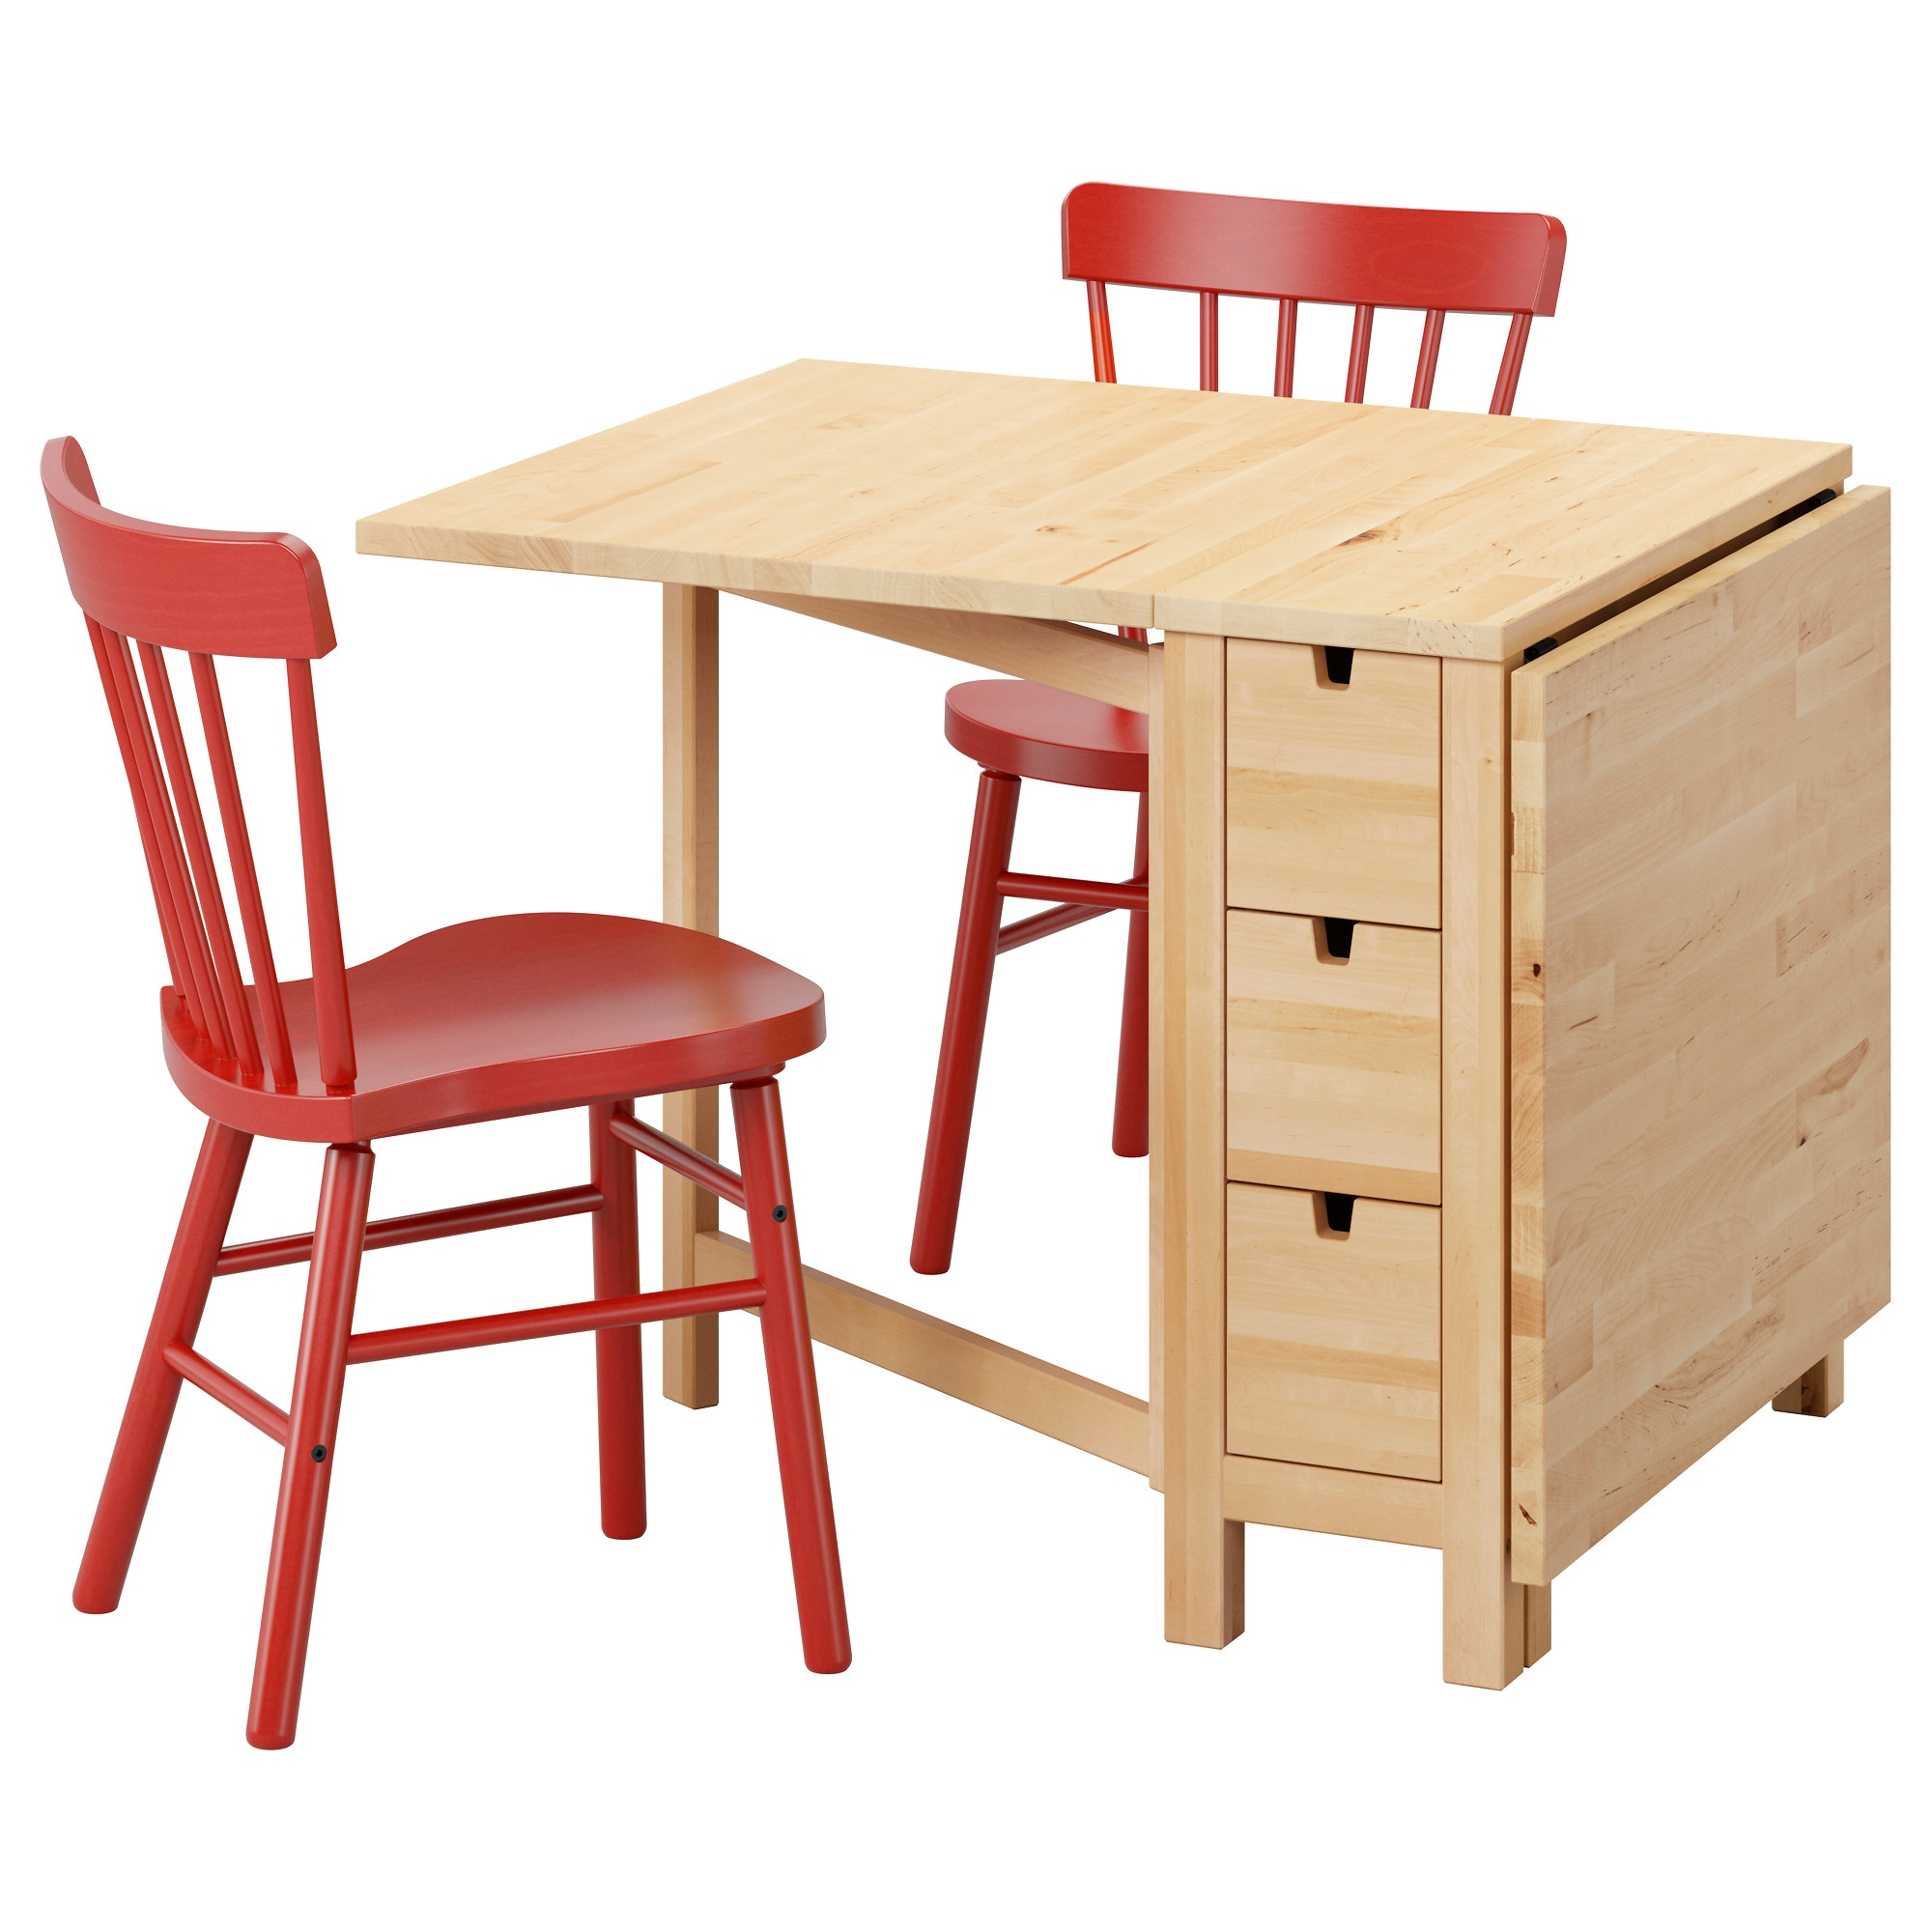 NORDEN / NORRARYD Table And 2 Chairs   IKEA